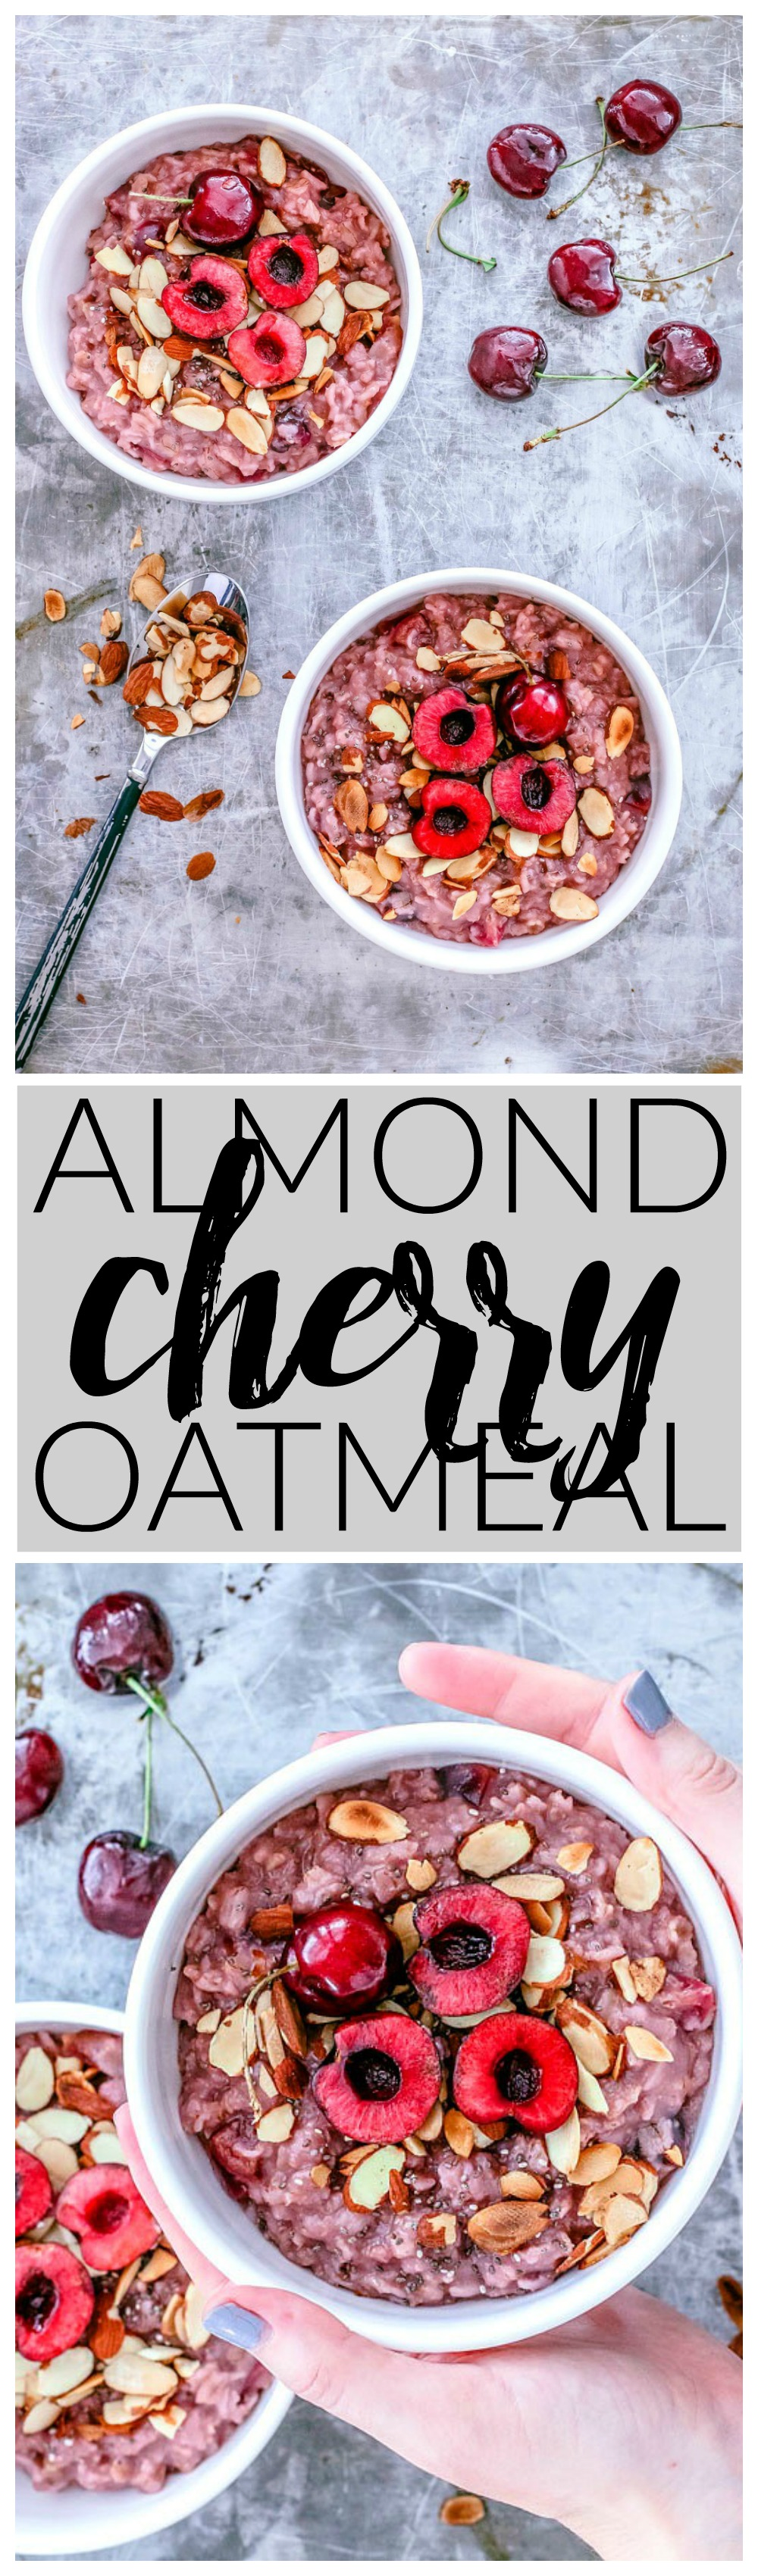 Almond Cherry Oatmeal | Killing Thyme